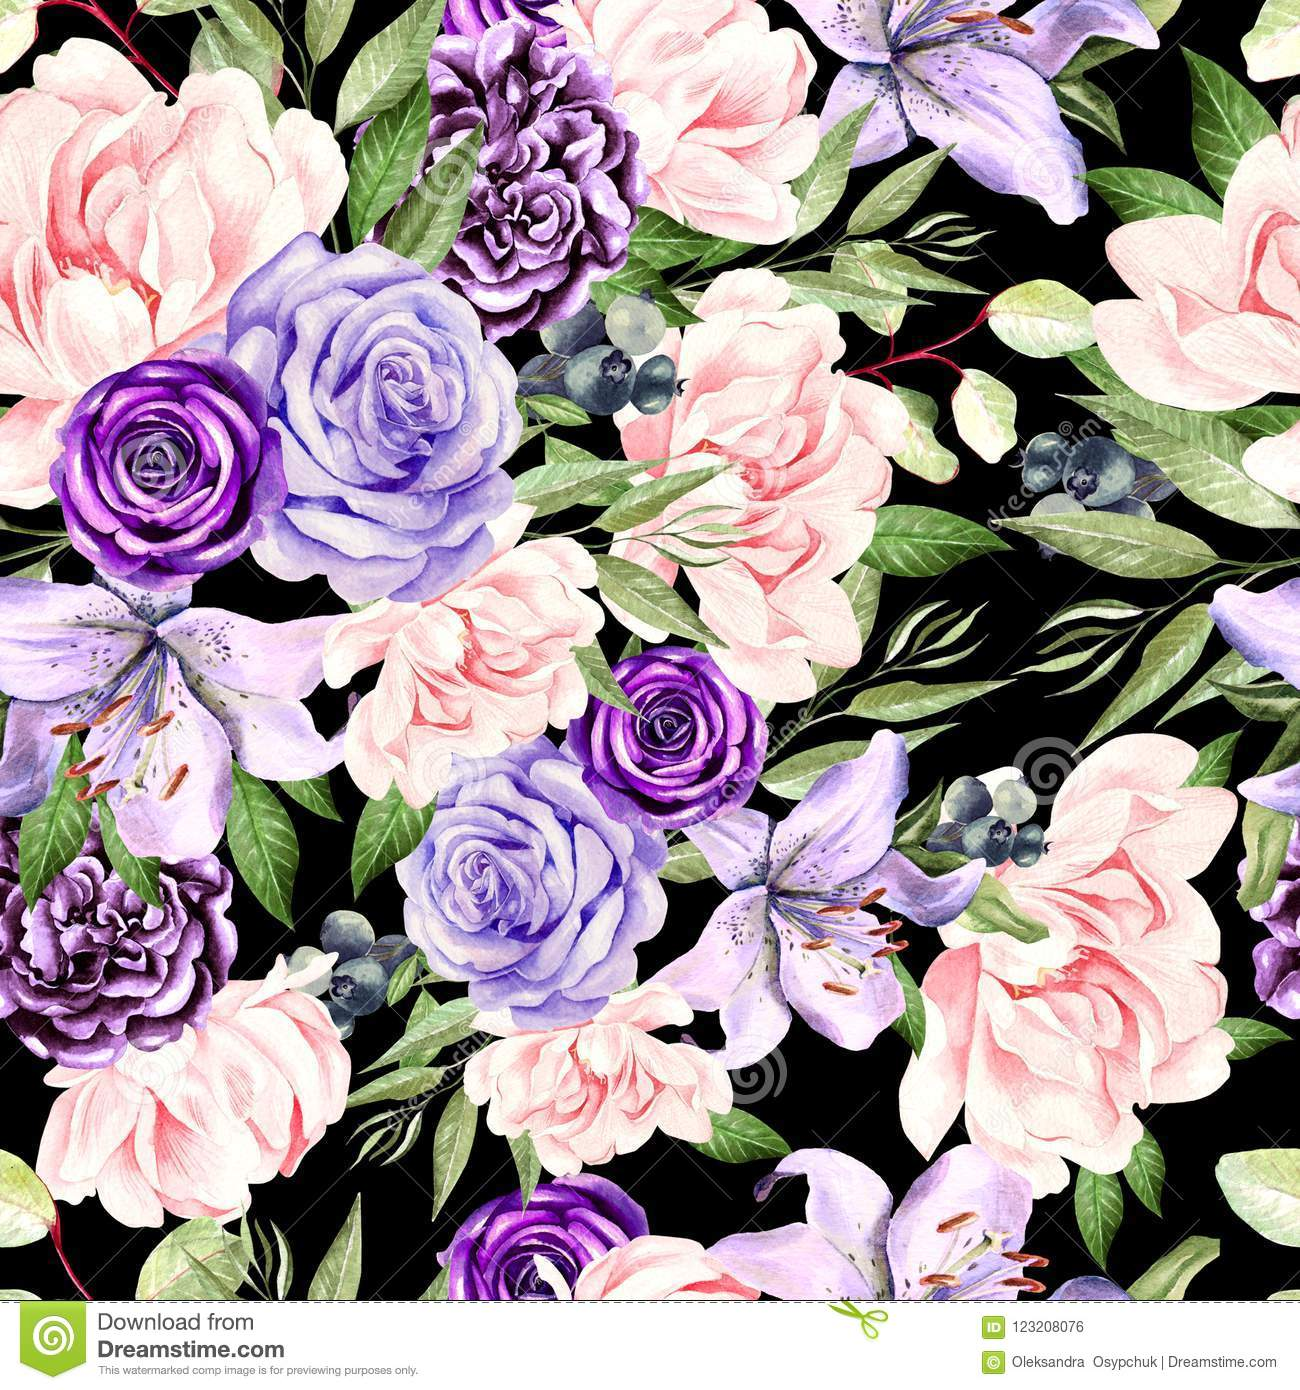 Watercolor pattern with peony rose flowers and lily stock photo download watercolor pattern with peony rose flowers and lily stock photo image of izmirmasajfo